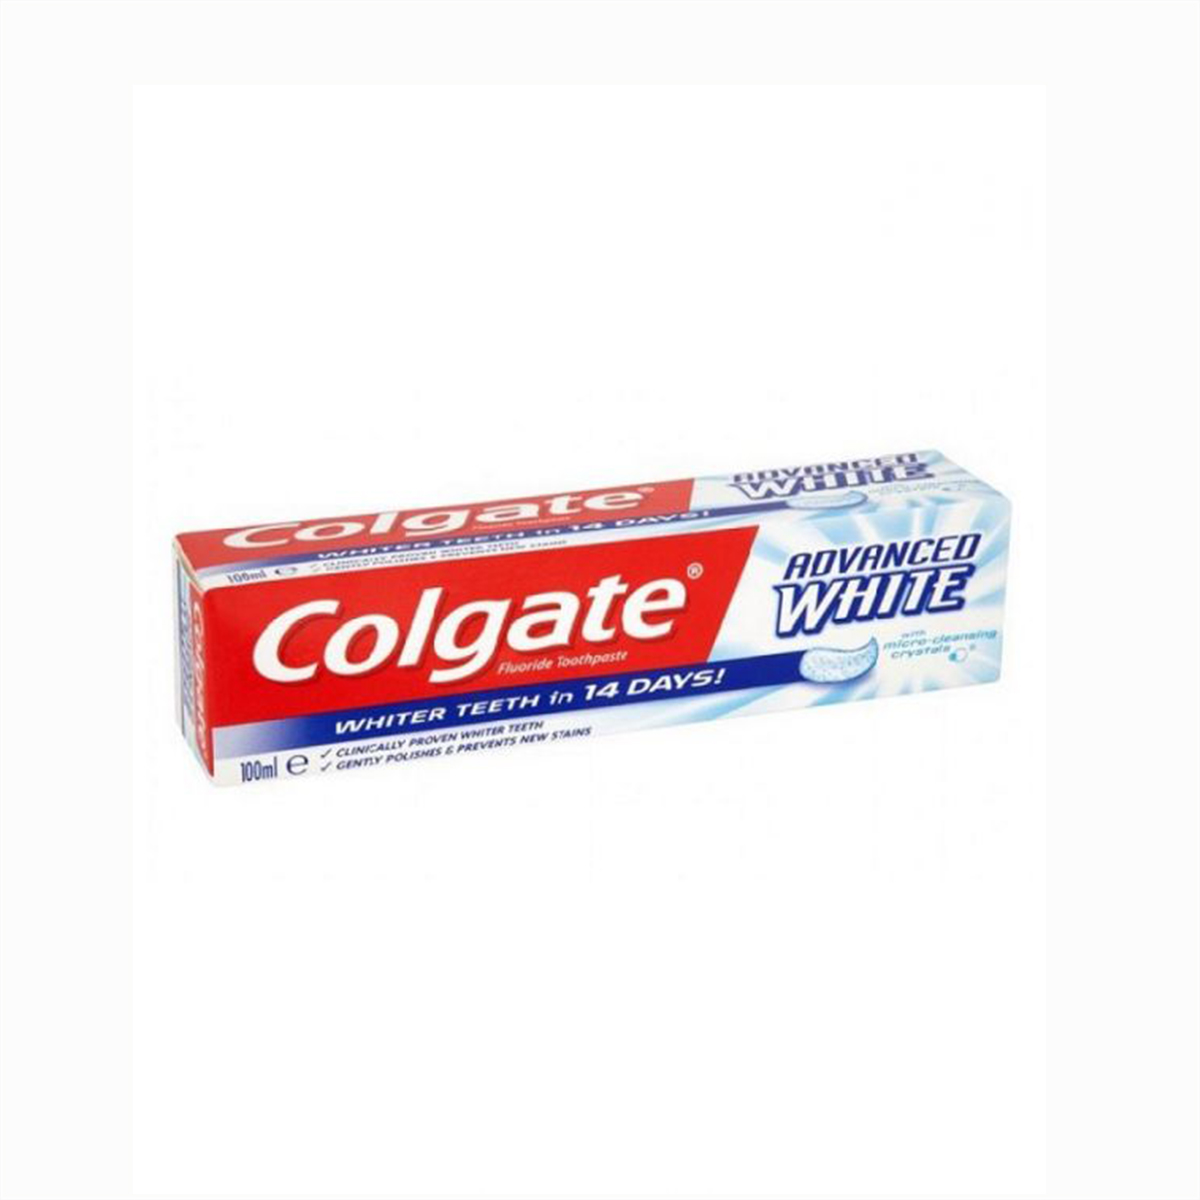 Colgate Advanced White Toothpaste (Imported), 100ml